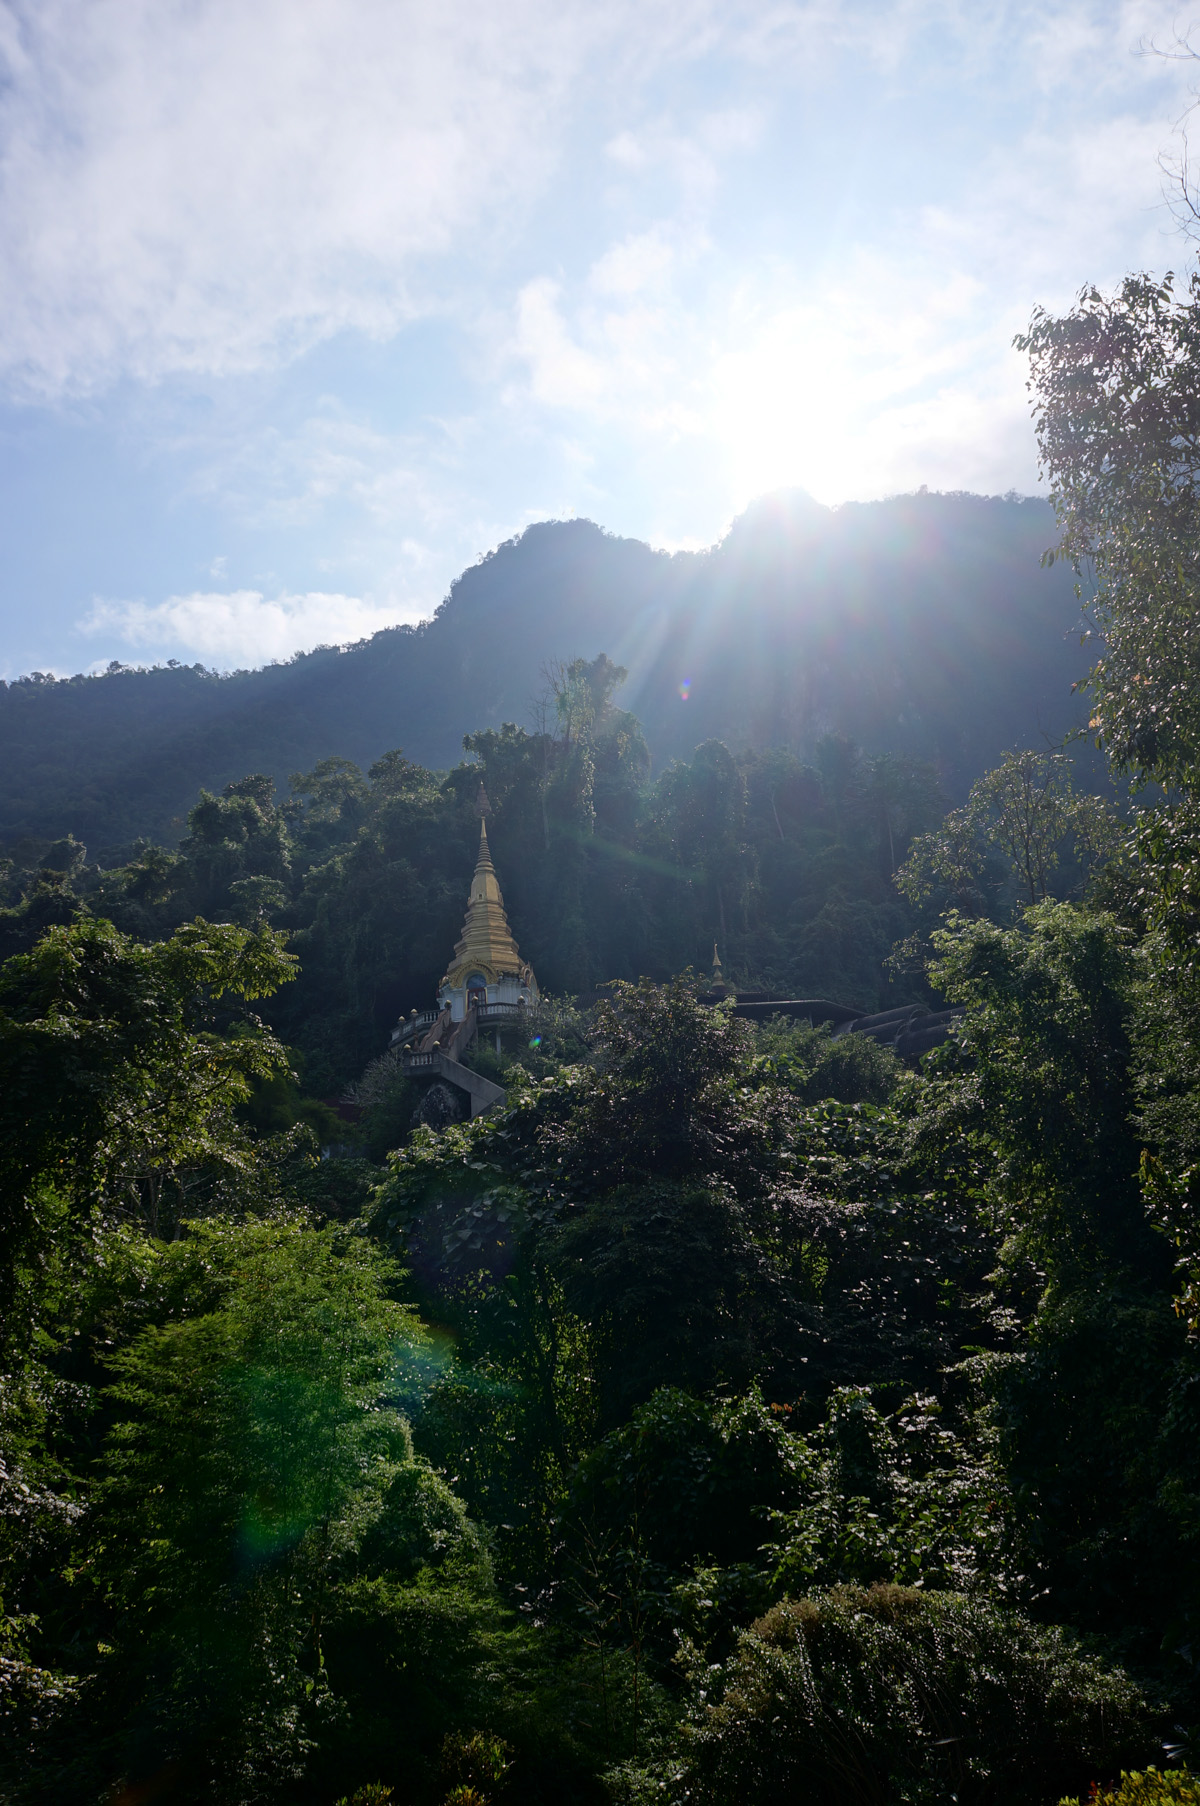 Another view of Wat Tham Pha Plong temple with more sun peeking over the mountain